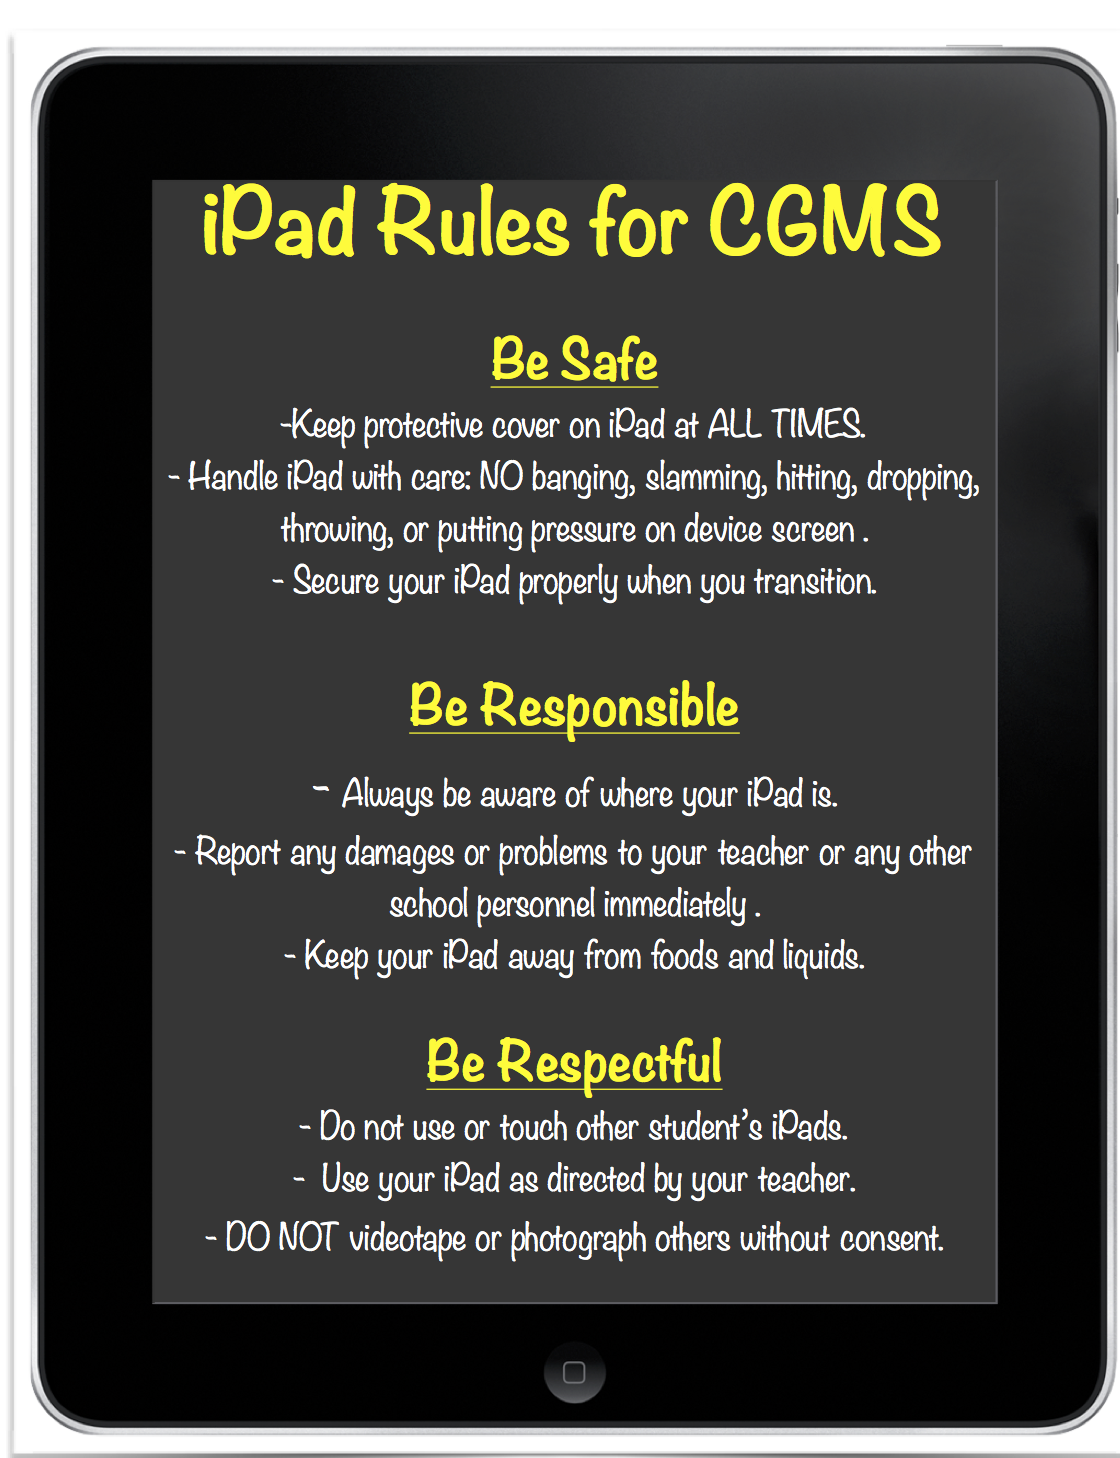 iPad Rules - be safe, be responsible, and be respectful